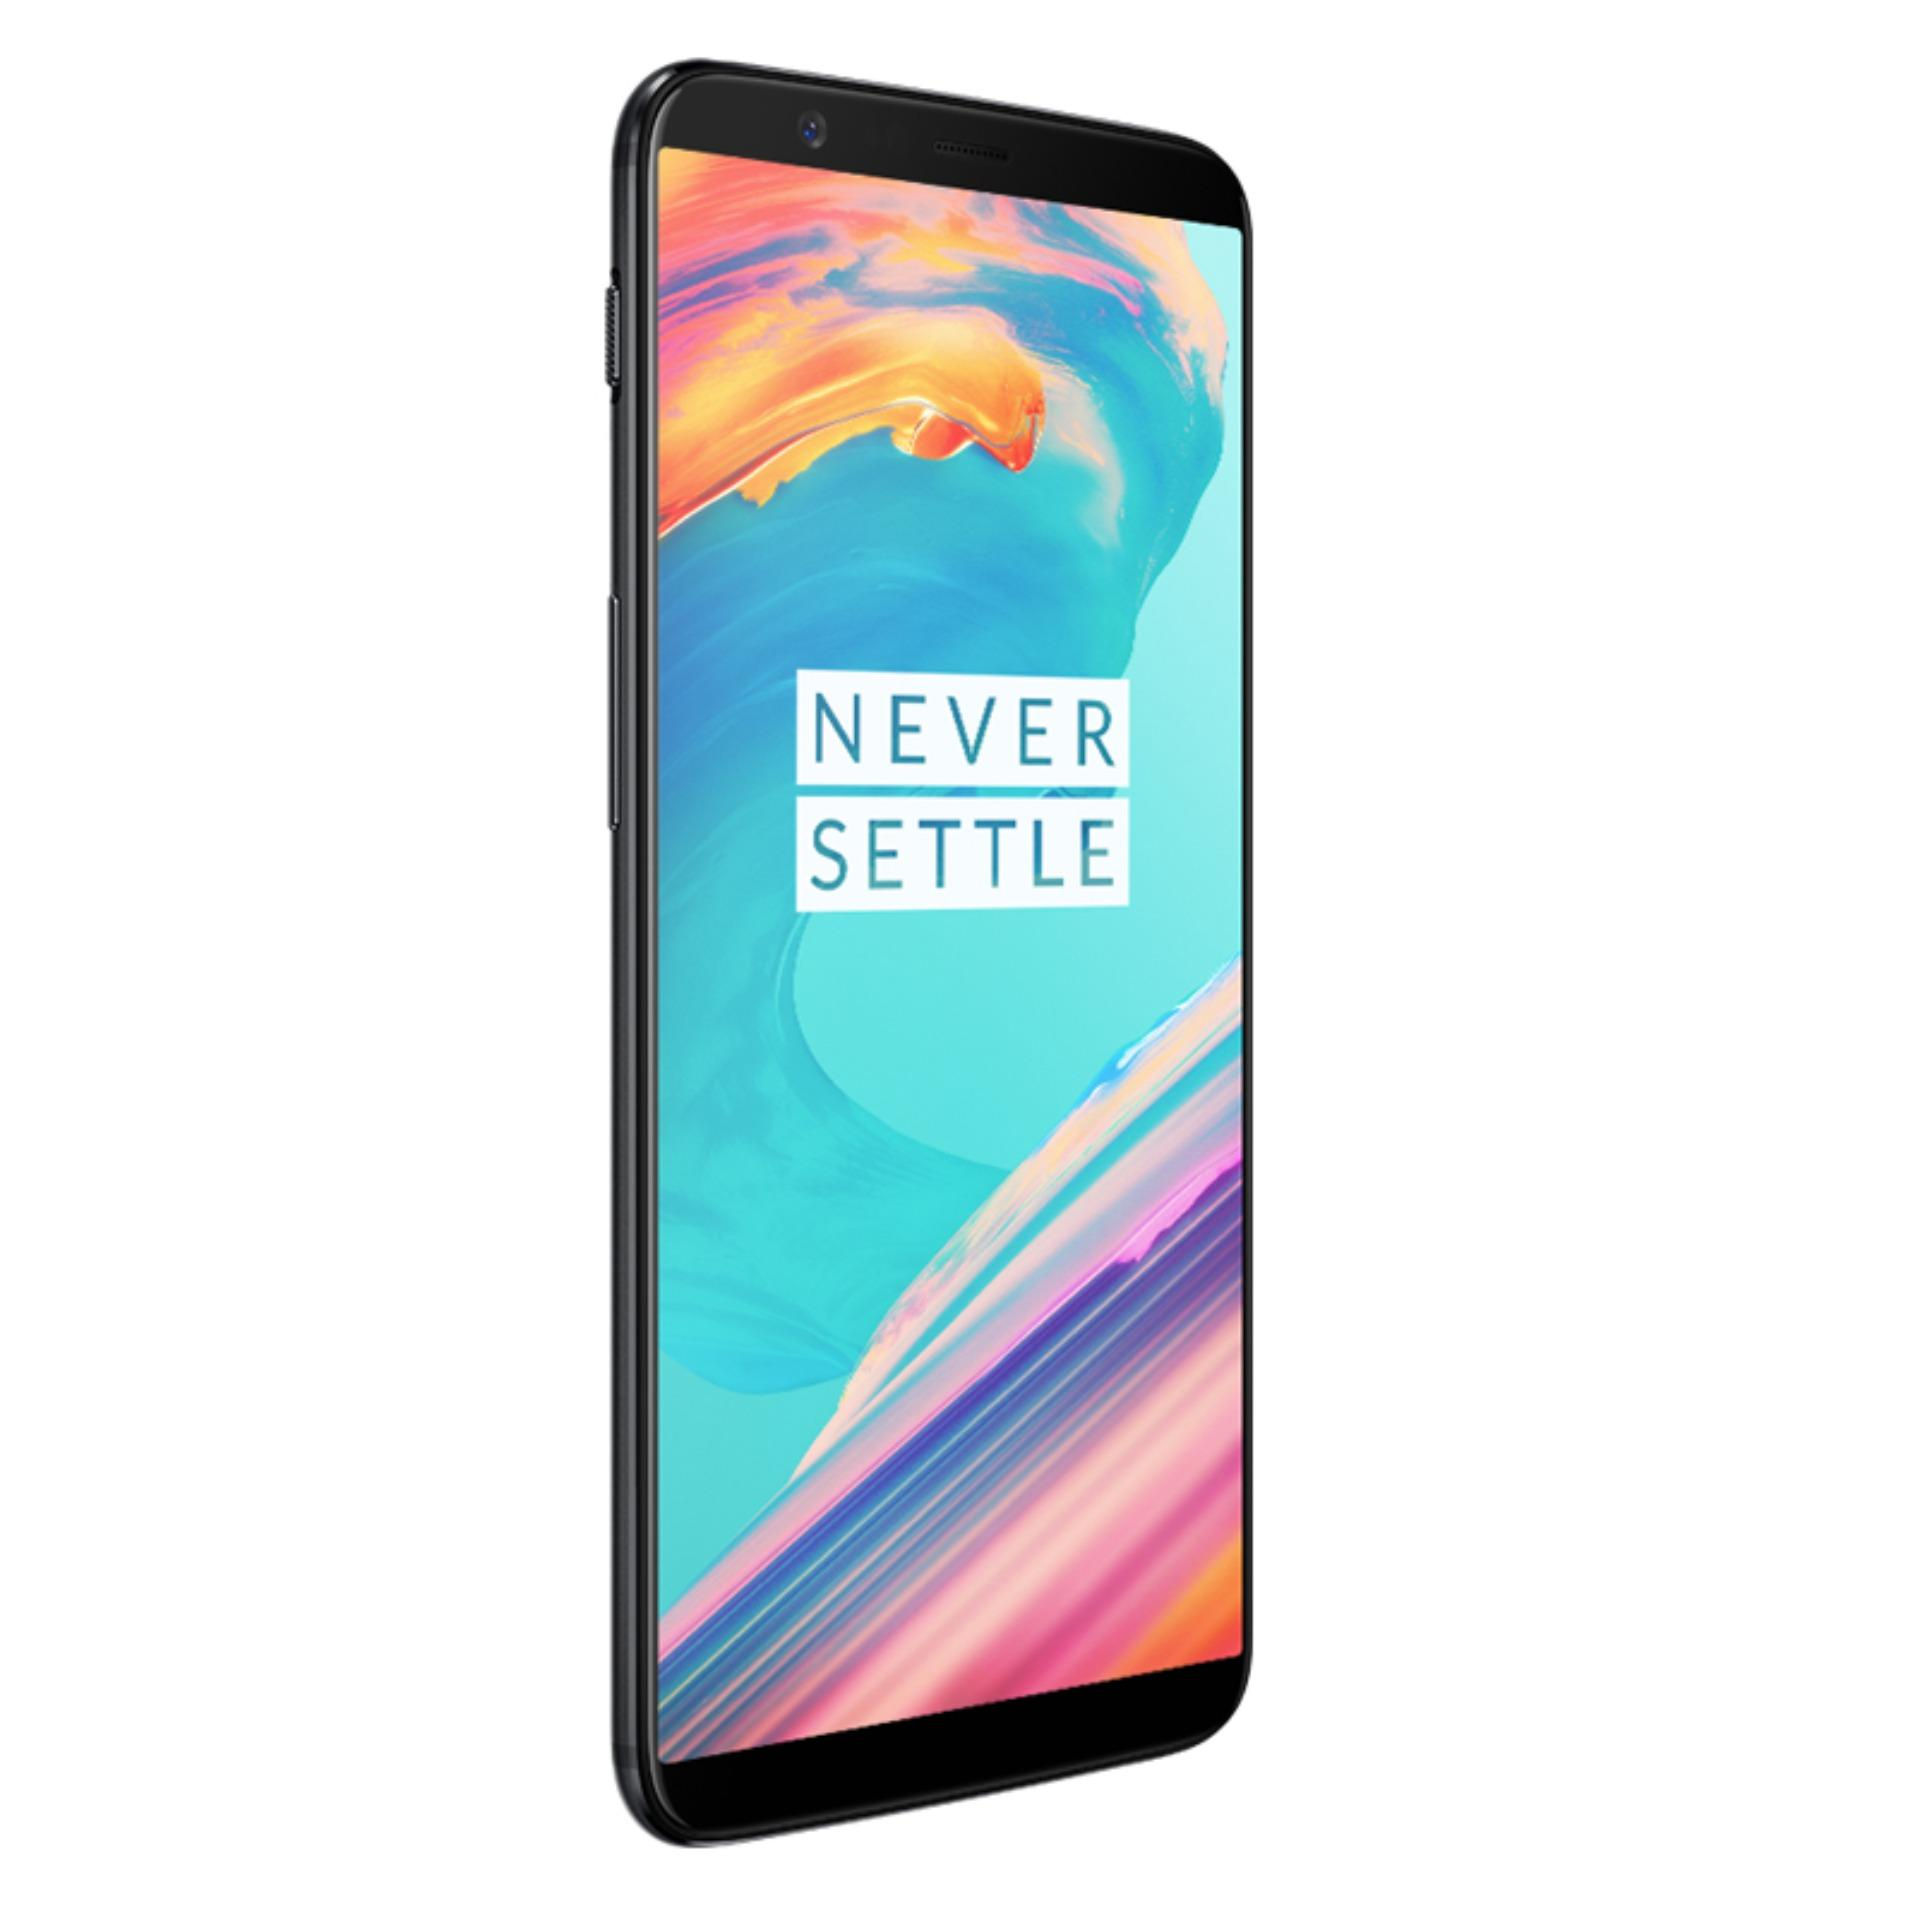 Oneplus 5T Midnight Black (8GB RAM+128GB ROM) - Brand New Local Set